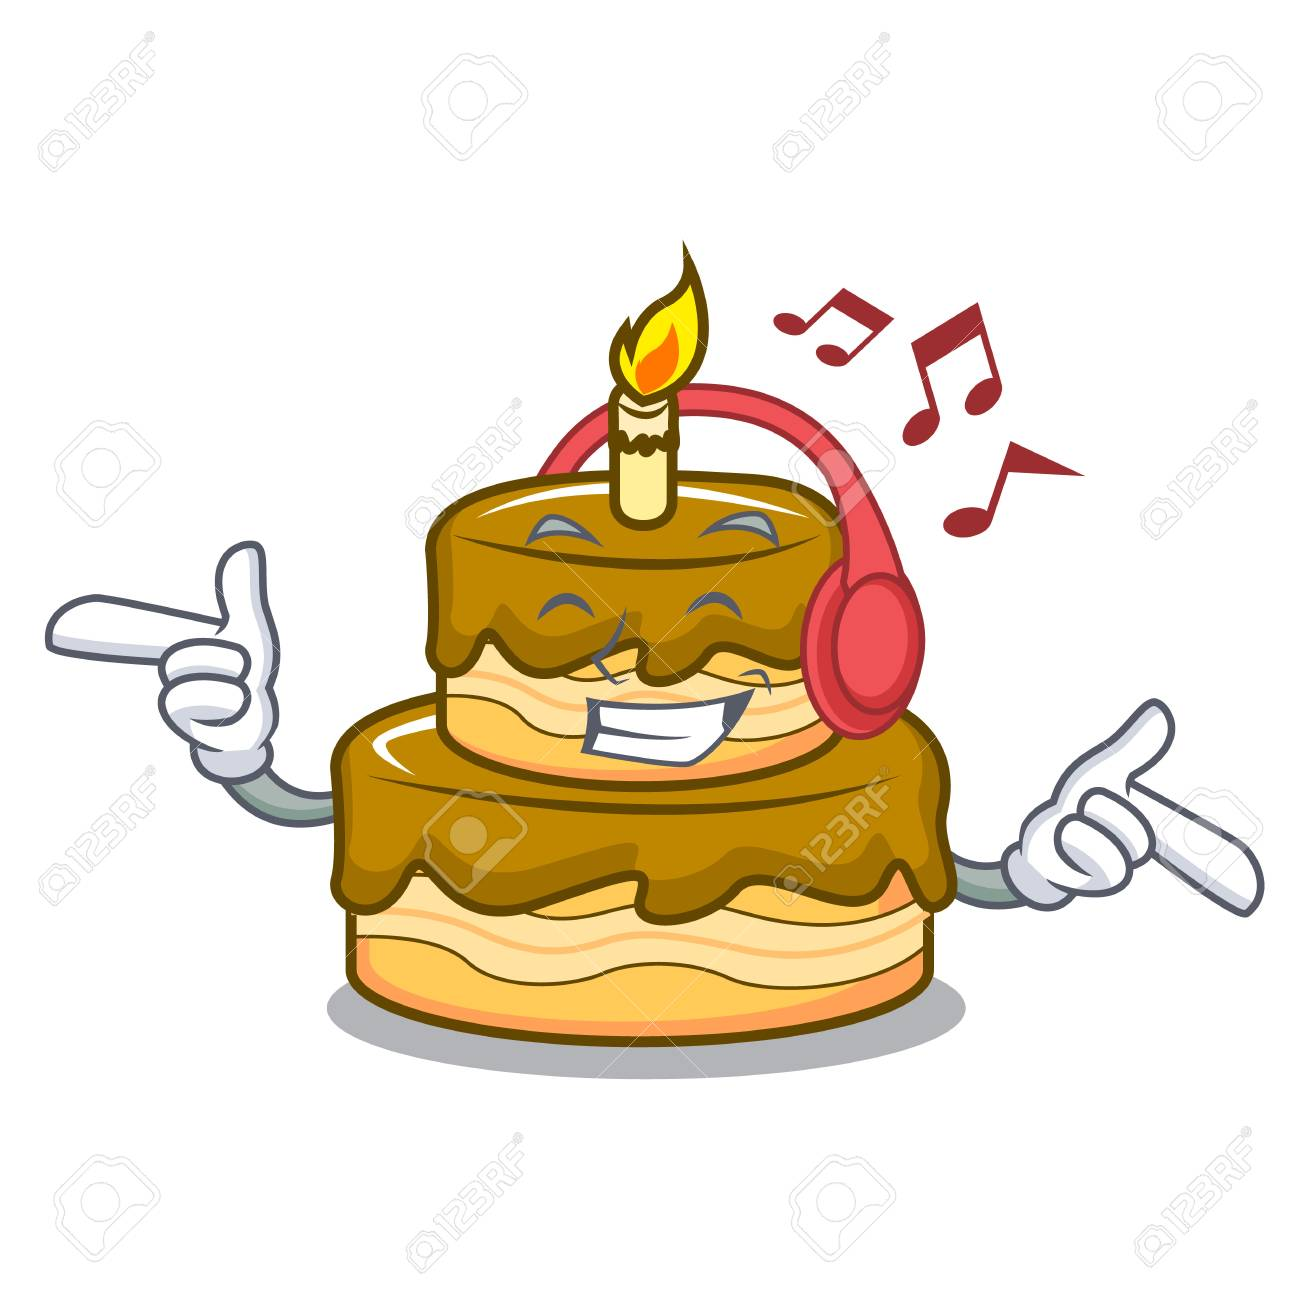 Phenomenal Listening Music Birthday Cake Mascot Cartoon Vector Illustration Funny Birthday Cards Online Inifofree Goldxyz